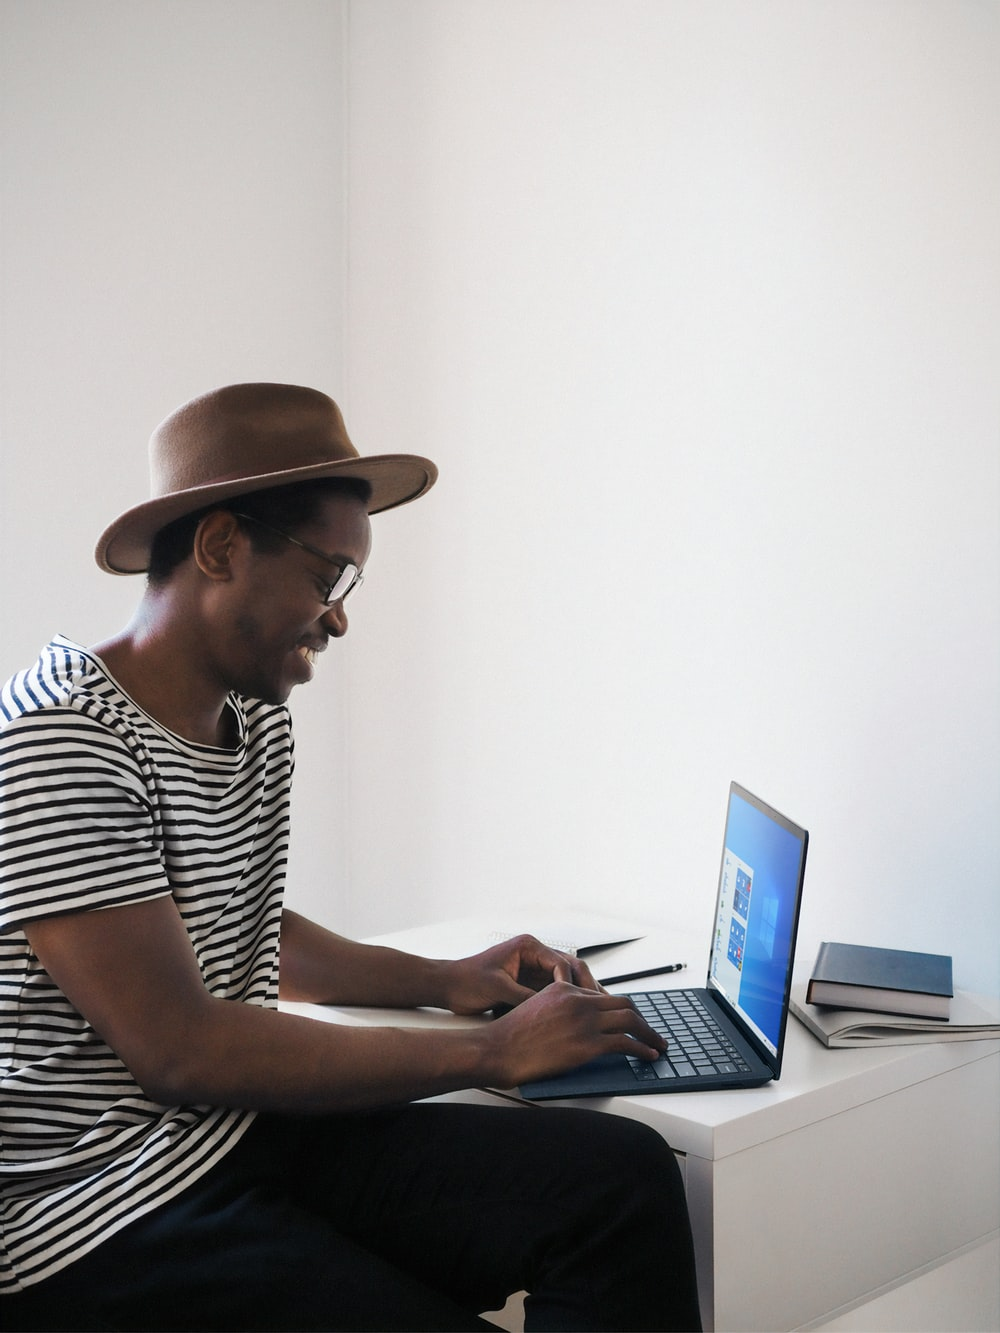 man in white and black striped shirt using microsoft surface cobalt blue laptop computer